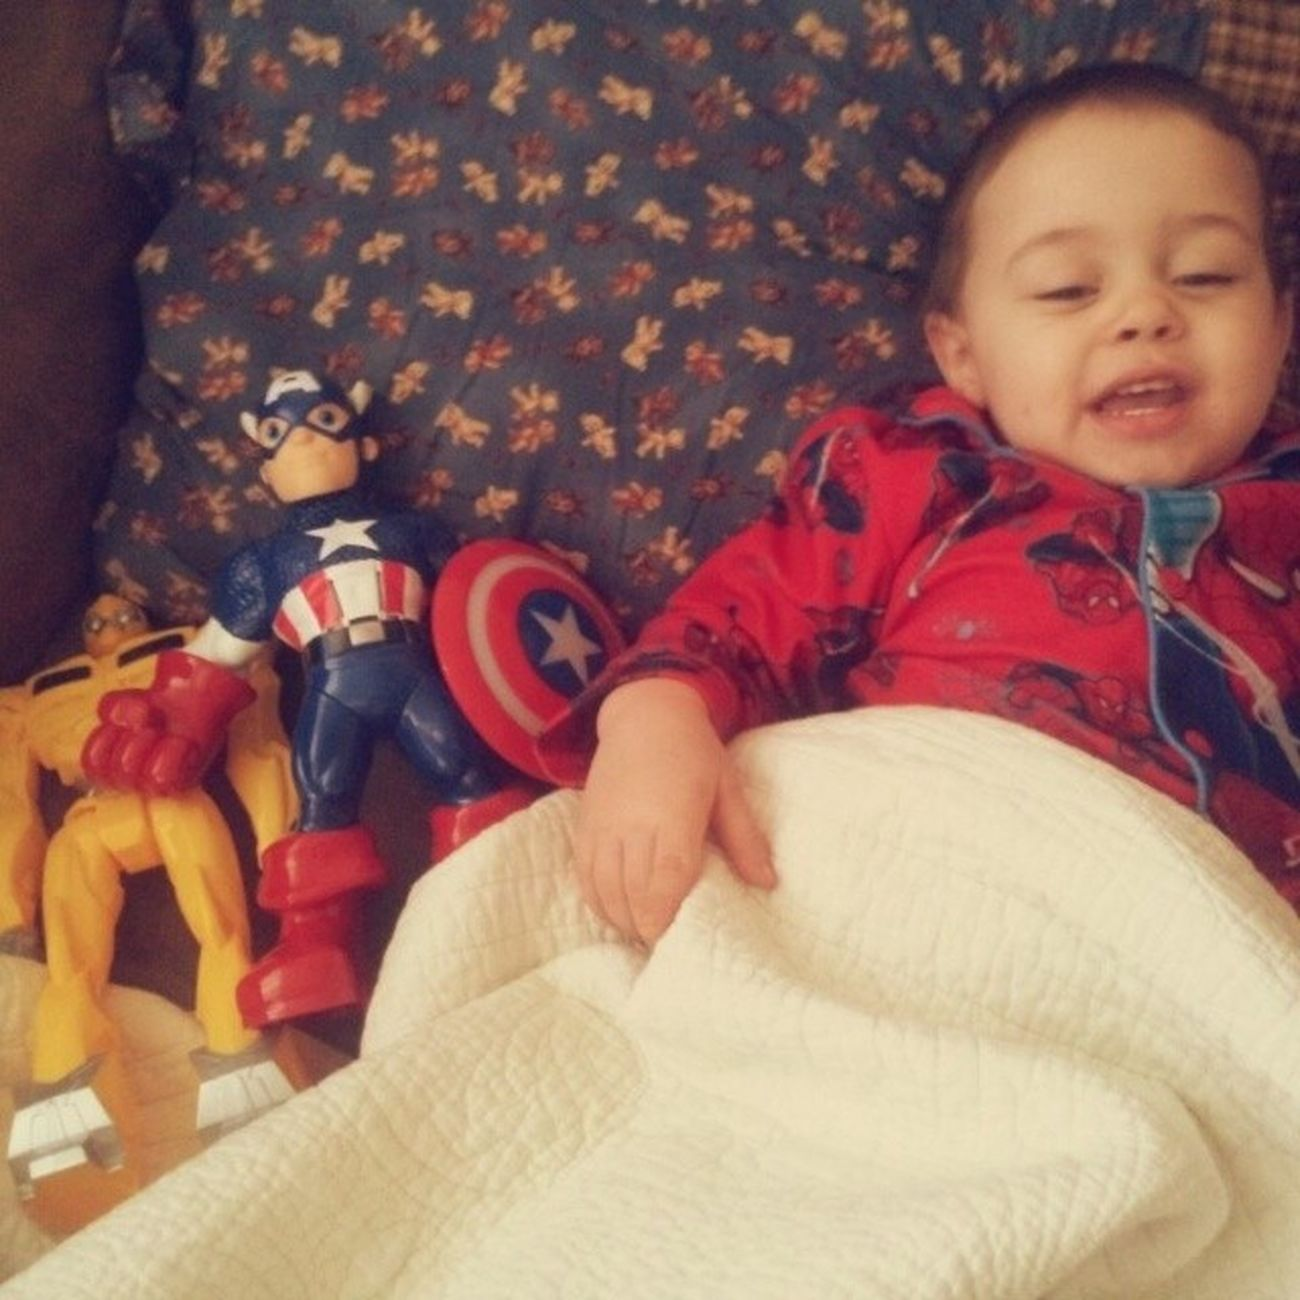 Sick day with Captianamerica & Bumblebee